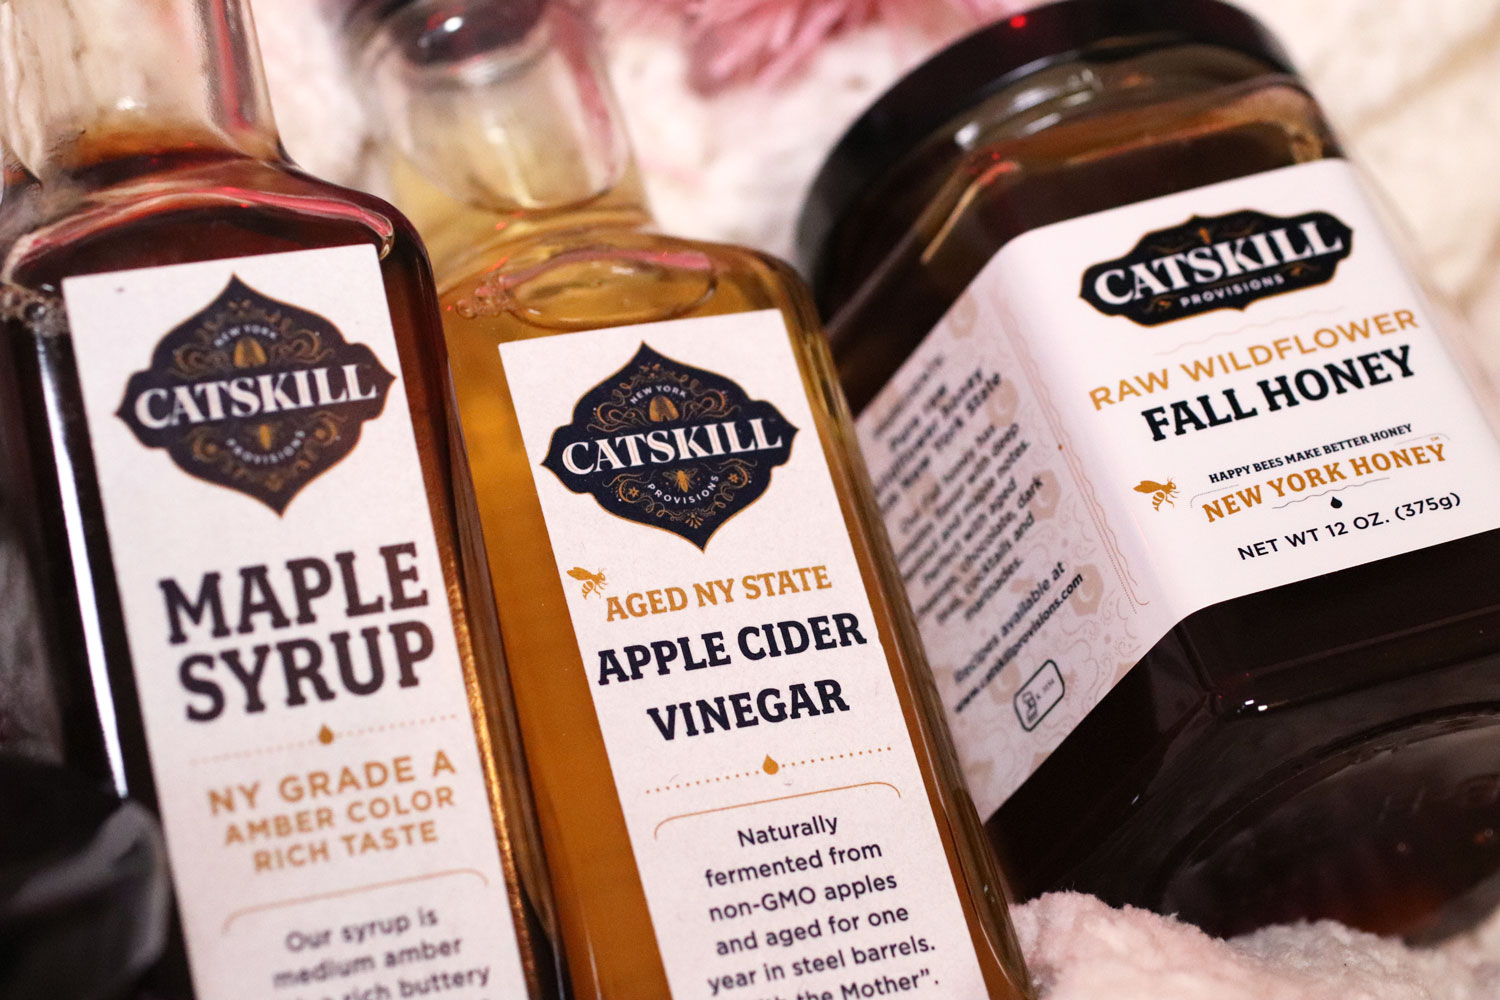 Woman Owned Holiday Gift Guide 2019 - Catskill Provisions maple syrup, honey and apple cider vinegar foodie gifts